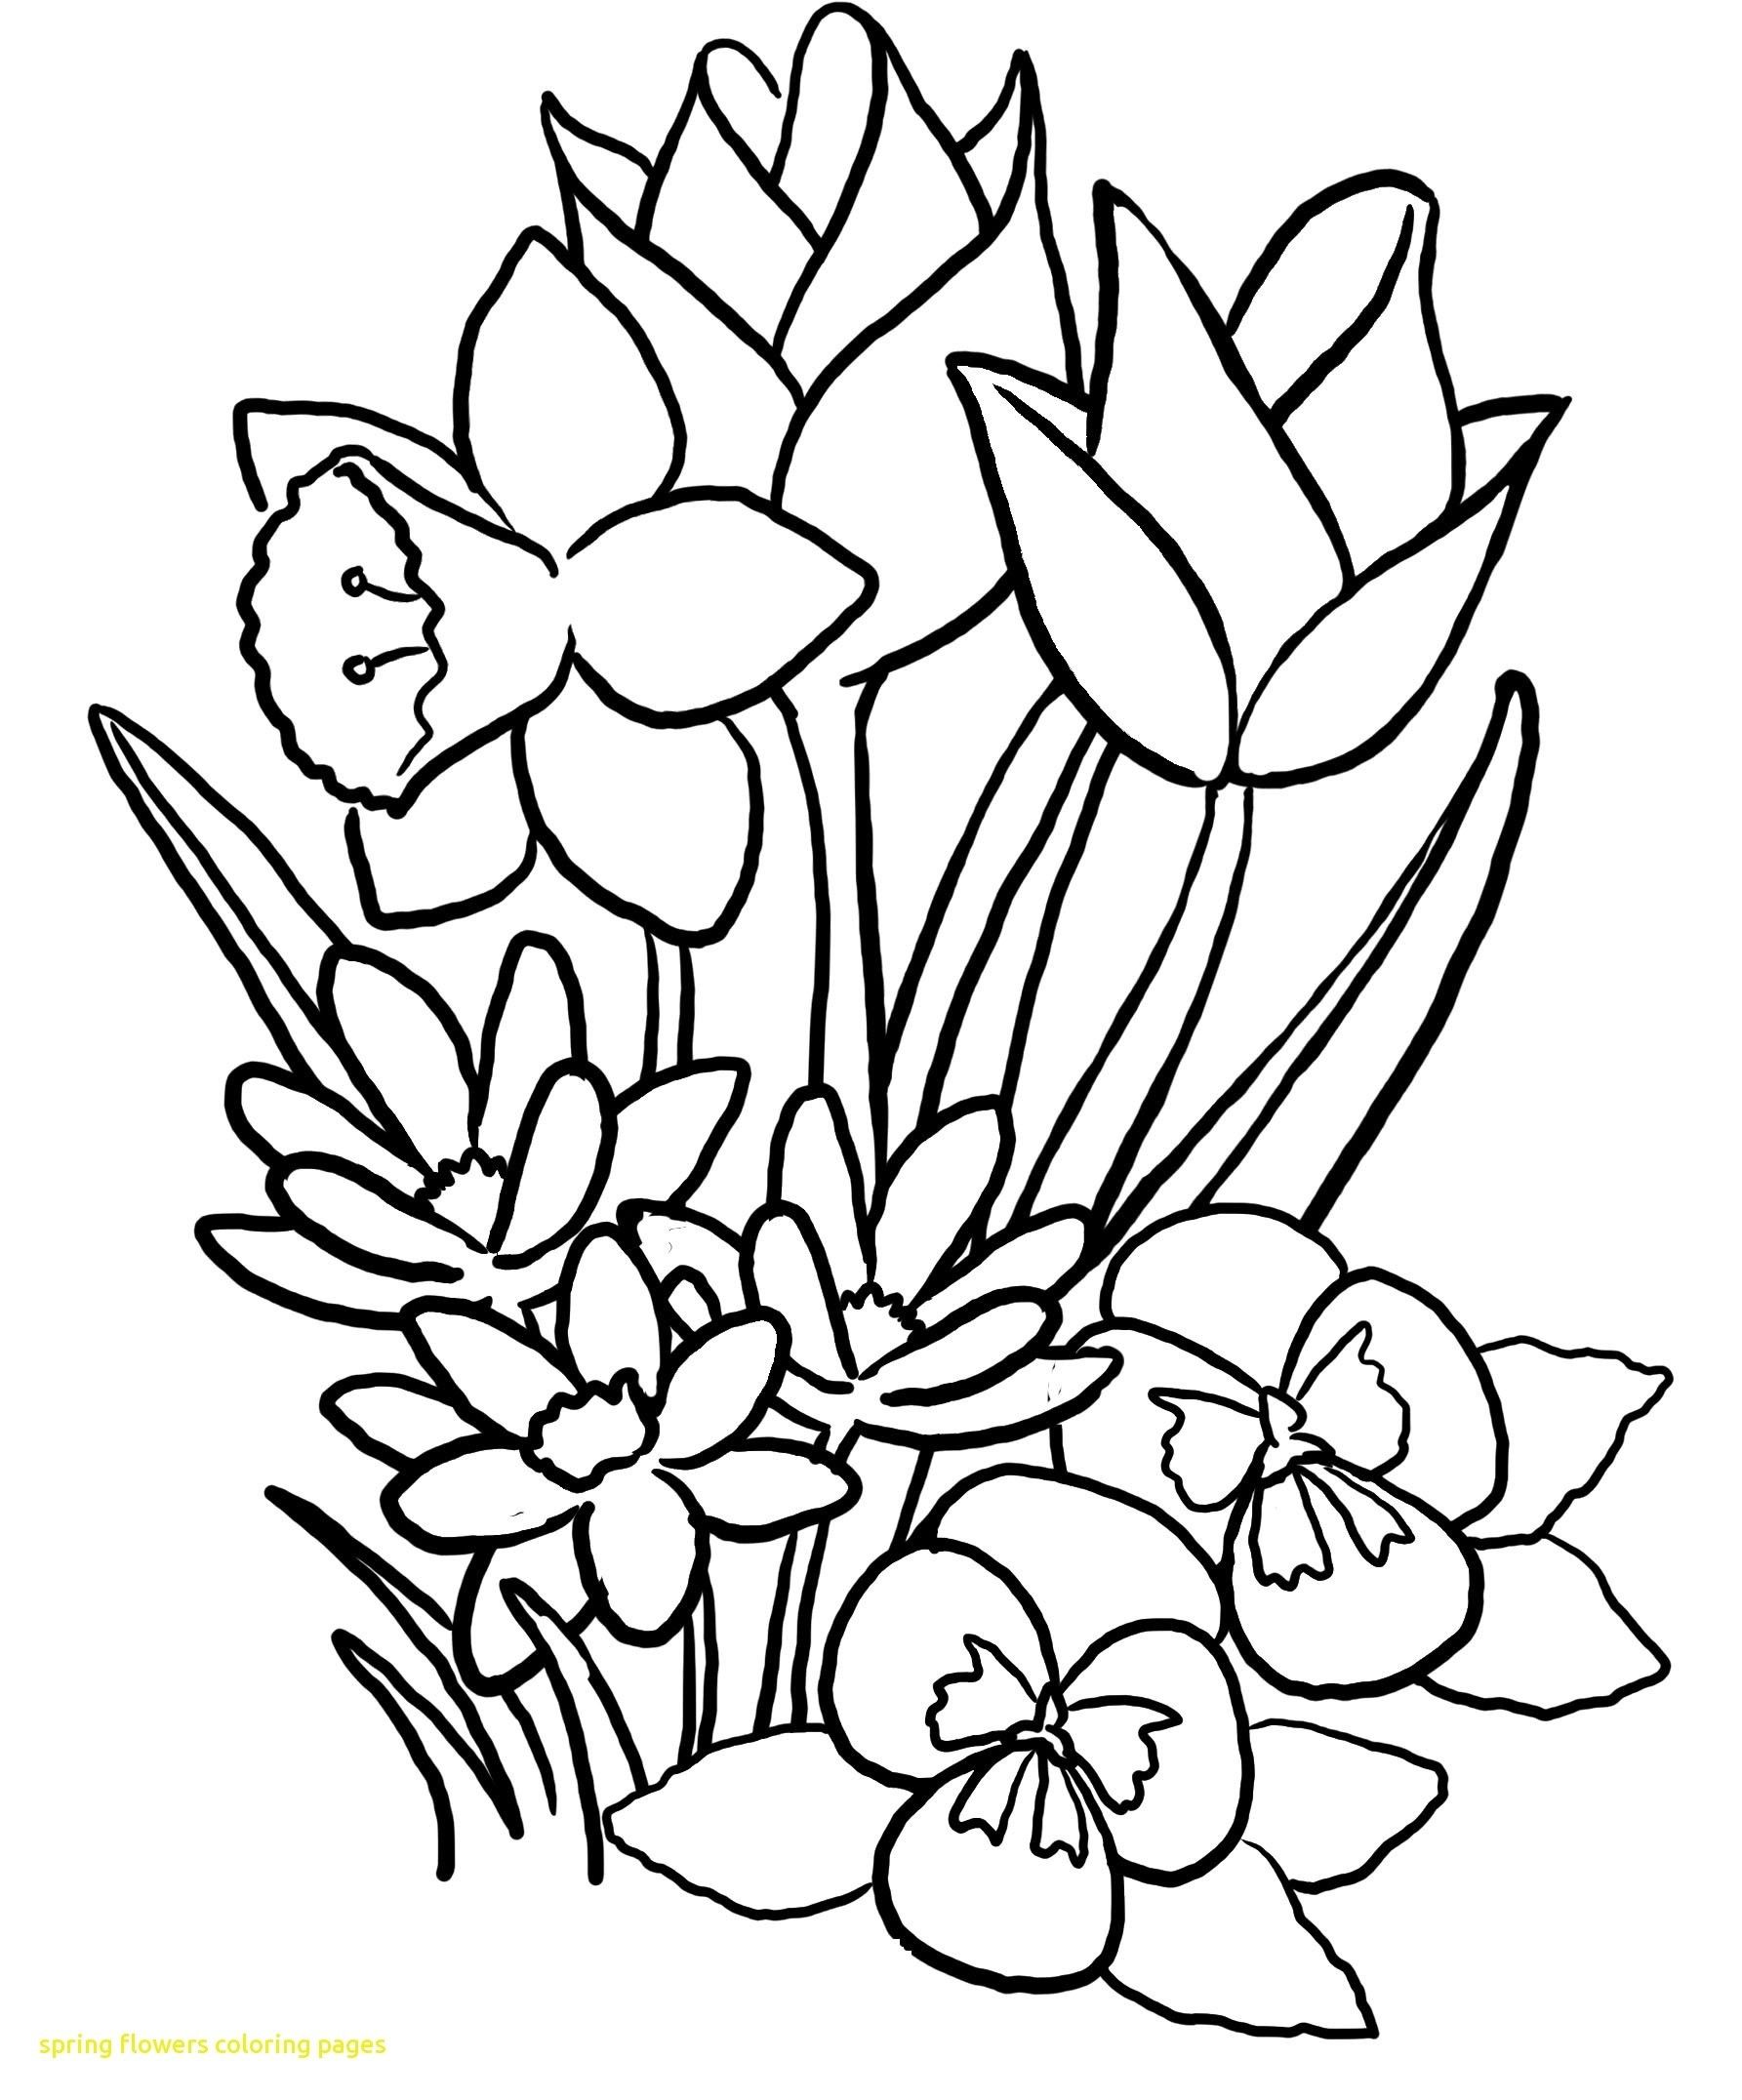 1785x2152 Coloring Pages Of Flowers And Birds For Mothers Day Butterflies